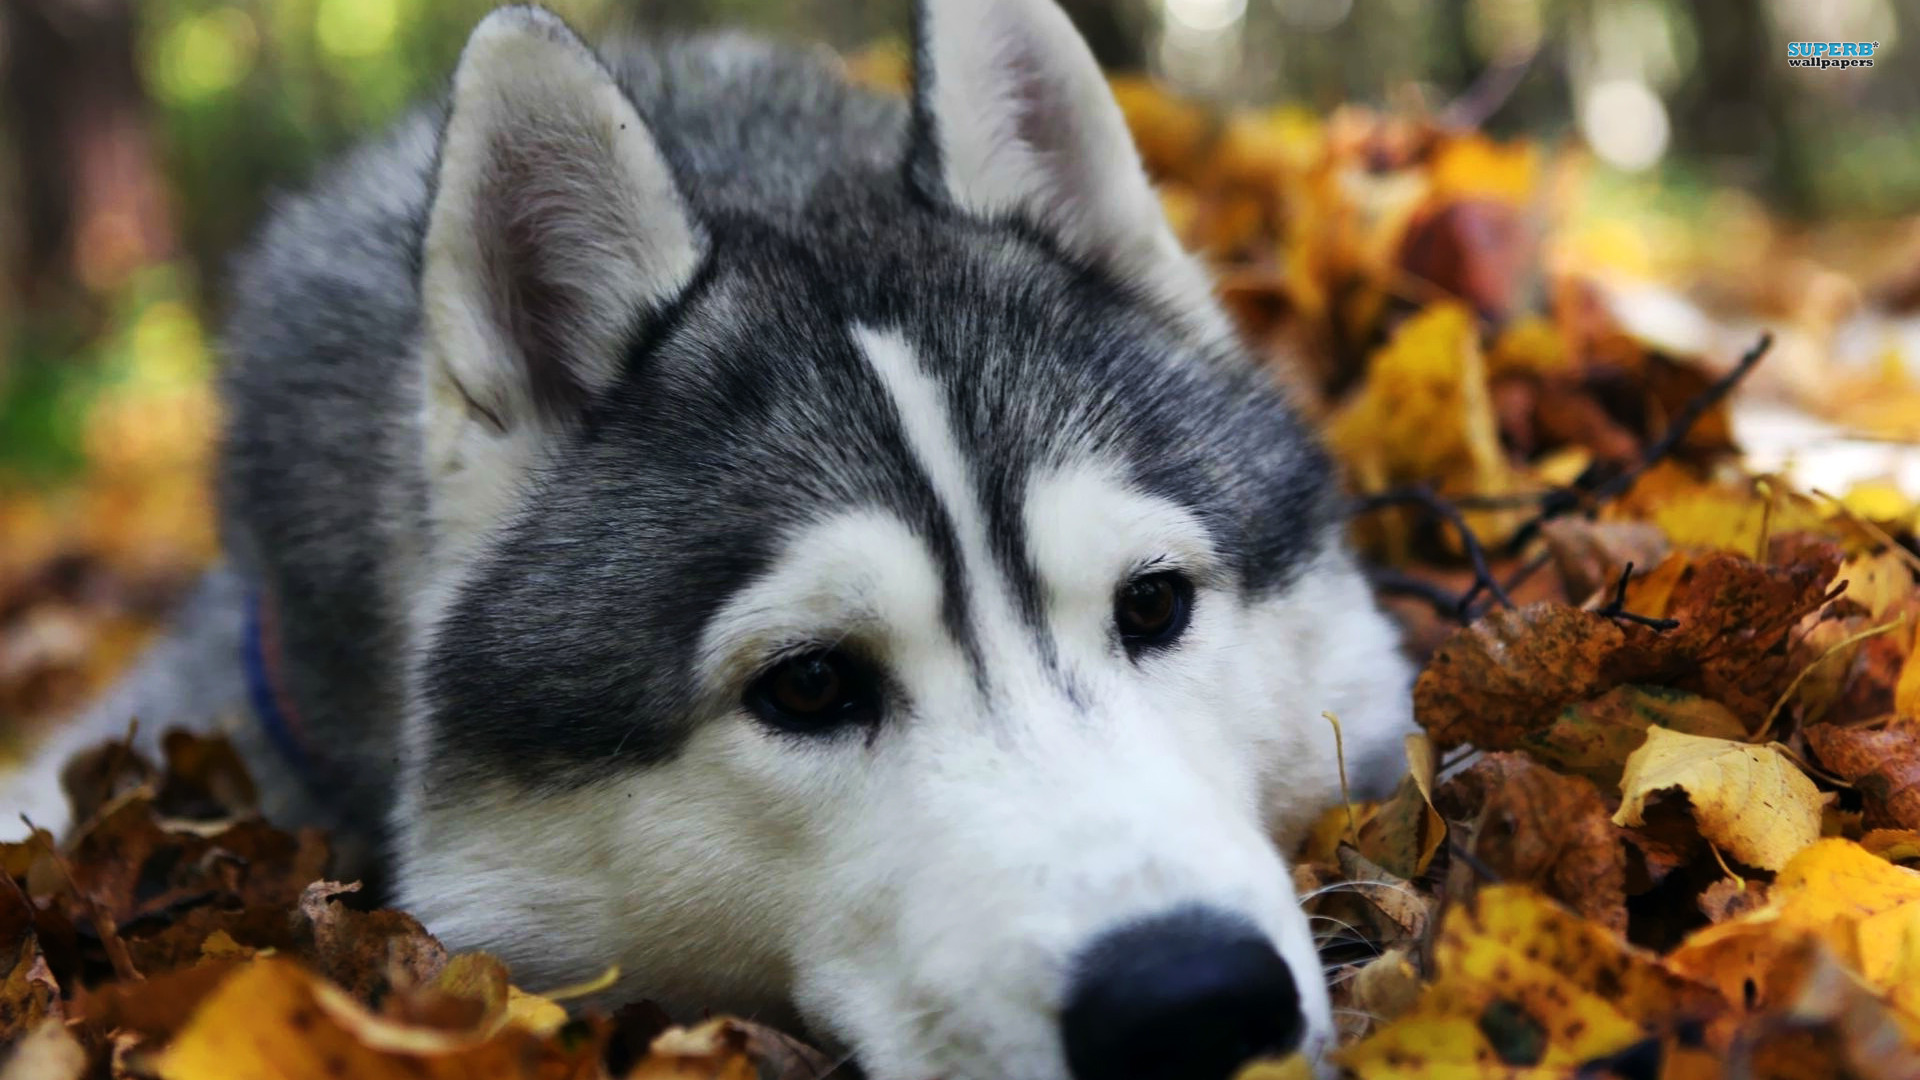 Husky Wallpaper 1920x1080 46268